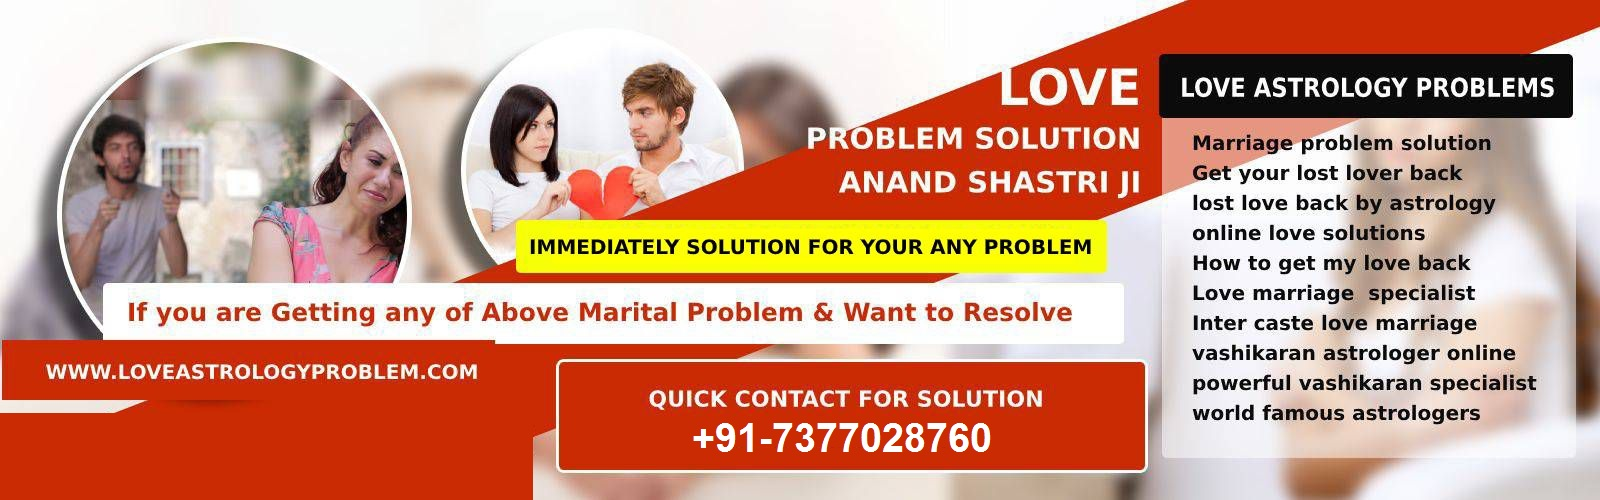 Love Problem Solution Astrologer Anand shastri ji